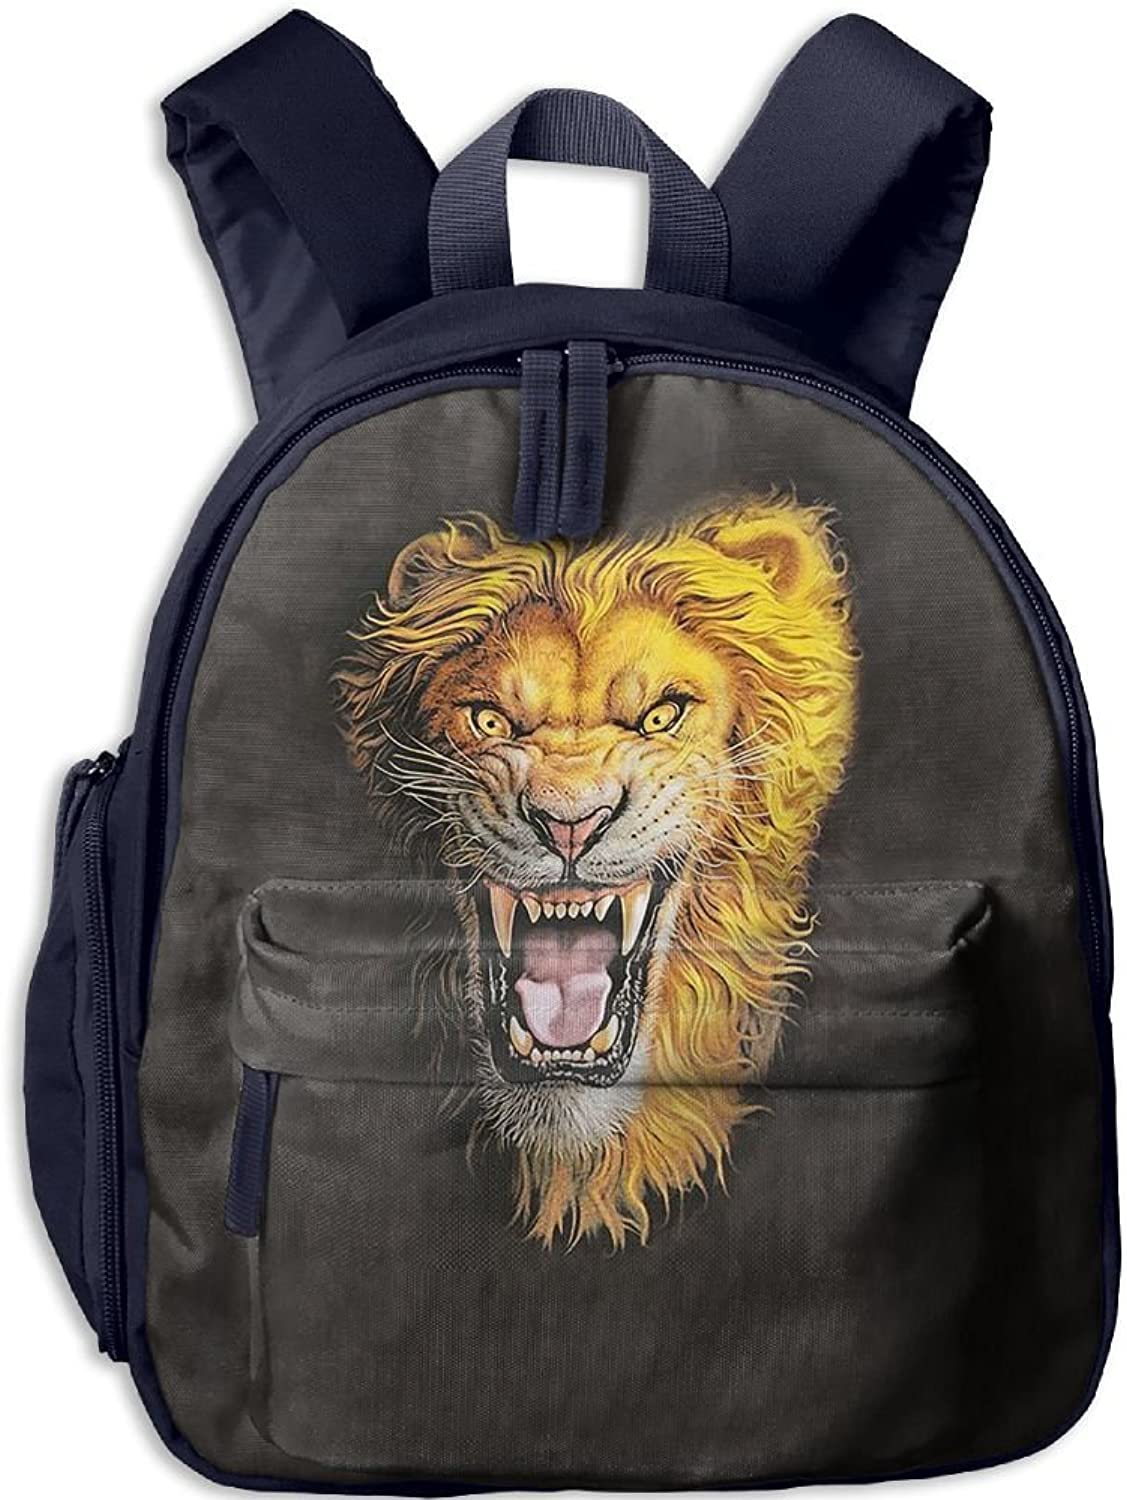 School Bag Asian Lion With Durable Travel Camping Backpack For Boys And Girls